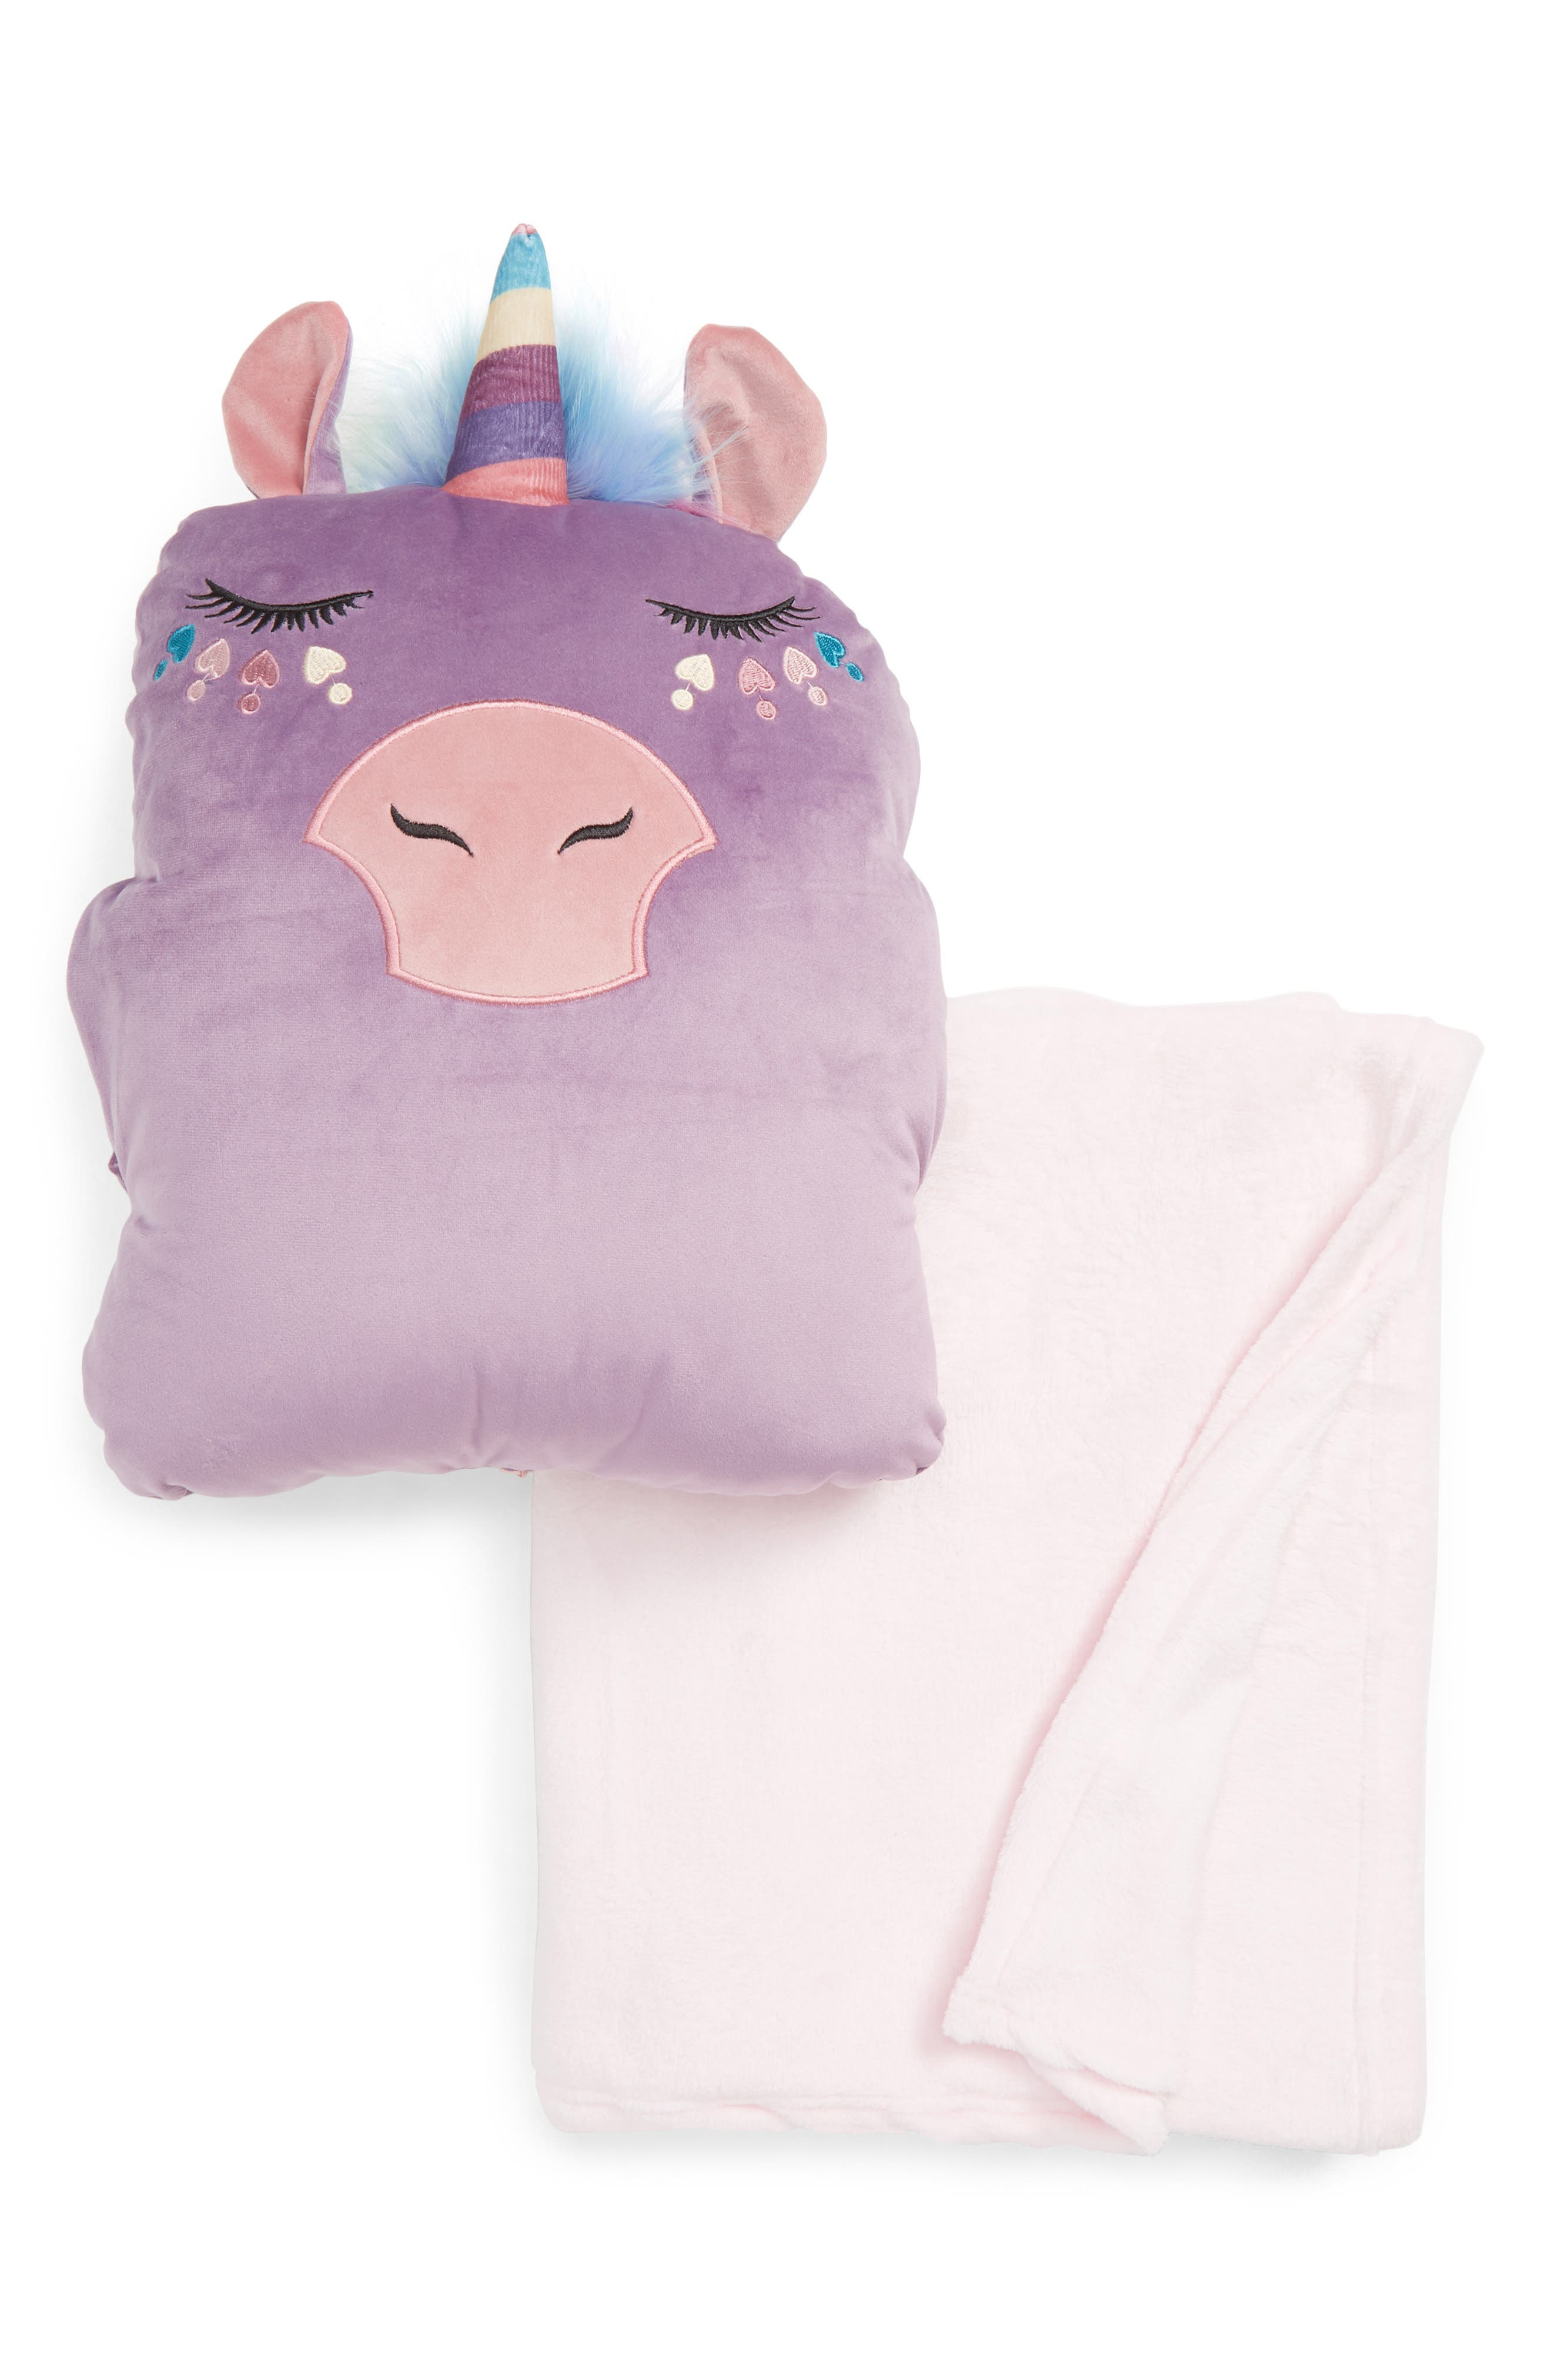 UNDER ONE SKY Critter Pillow & Throw Set, Main, color, LAVENDER UNICORN